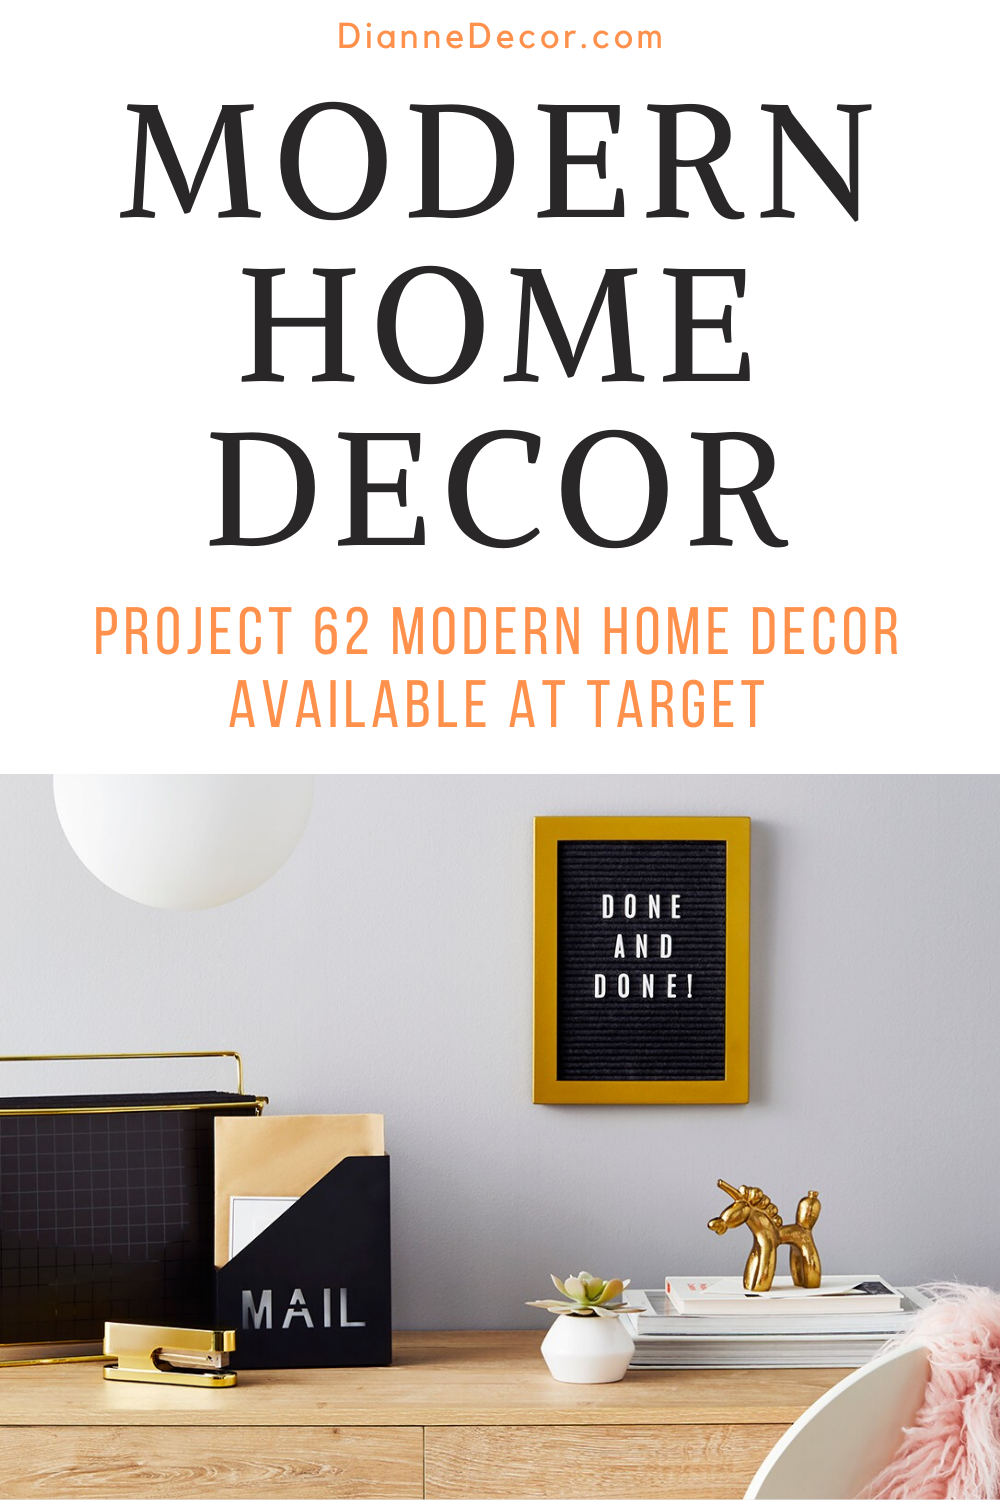 Modern Home Decor From Project 62 At Target Diannedecor Com Home Decor Inexpensive Decor Resource Decor